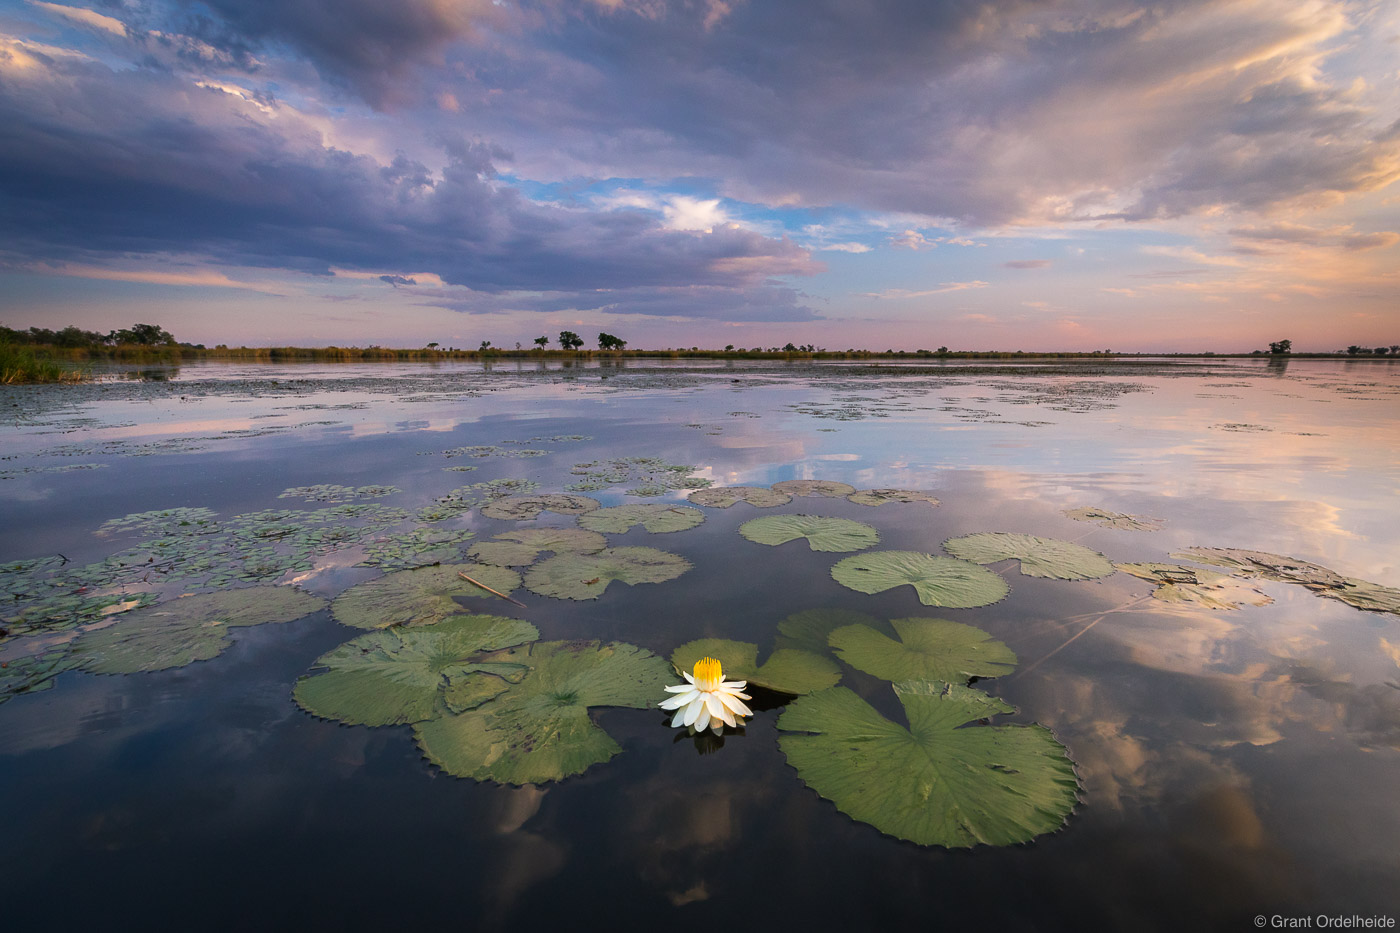 A Night-blooming Waterlily at sunset on the Okavago river delta.